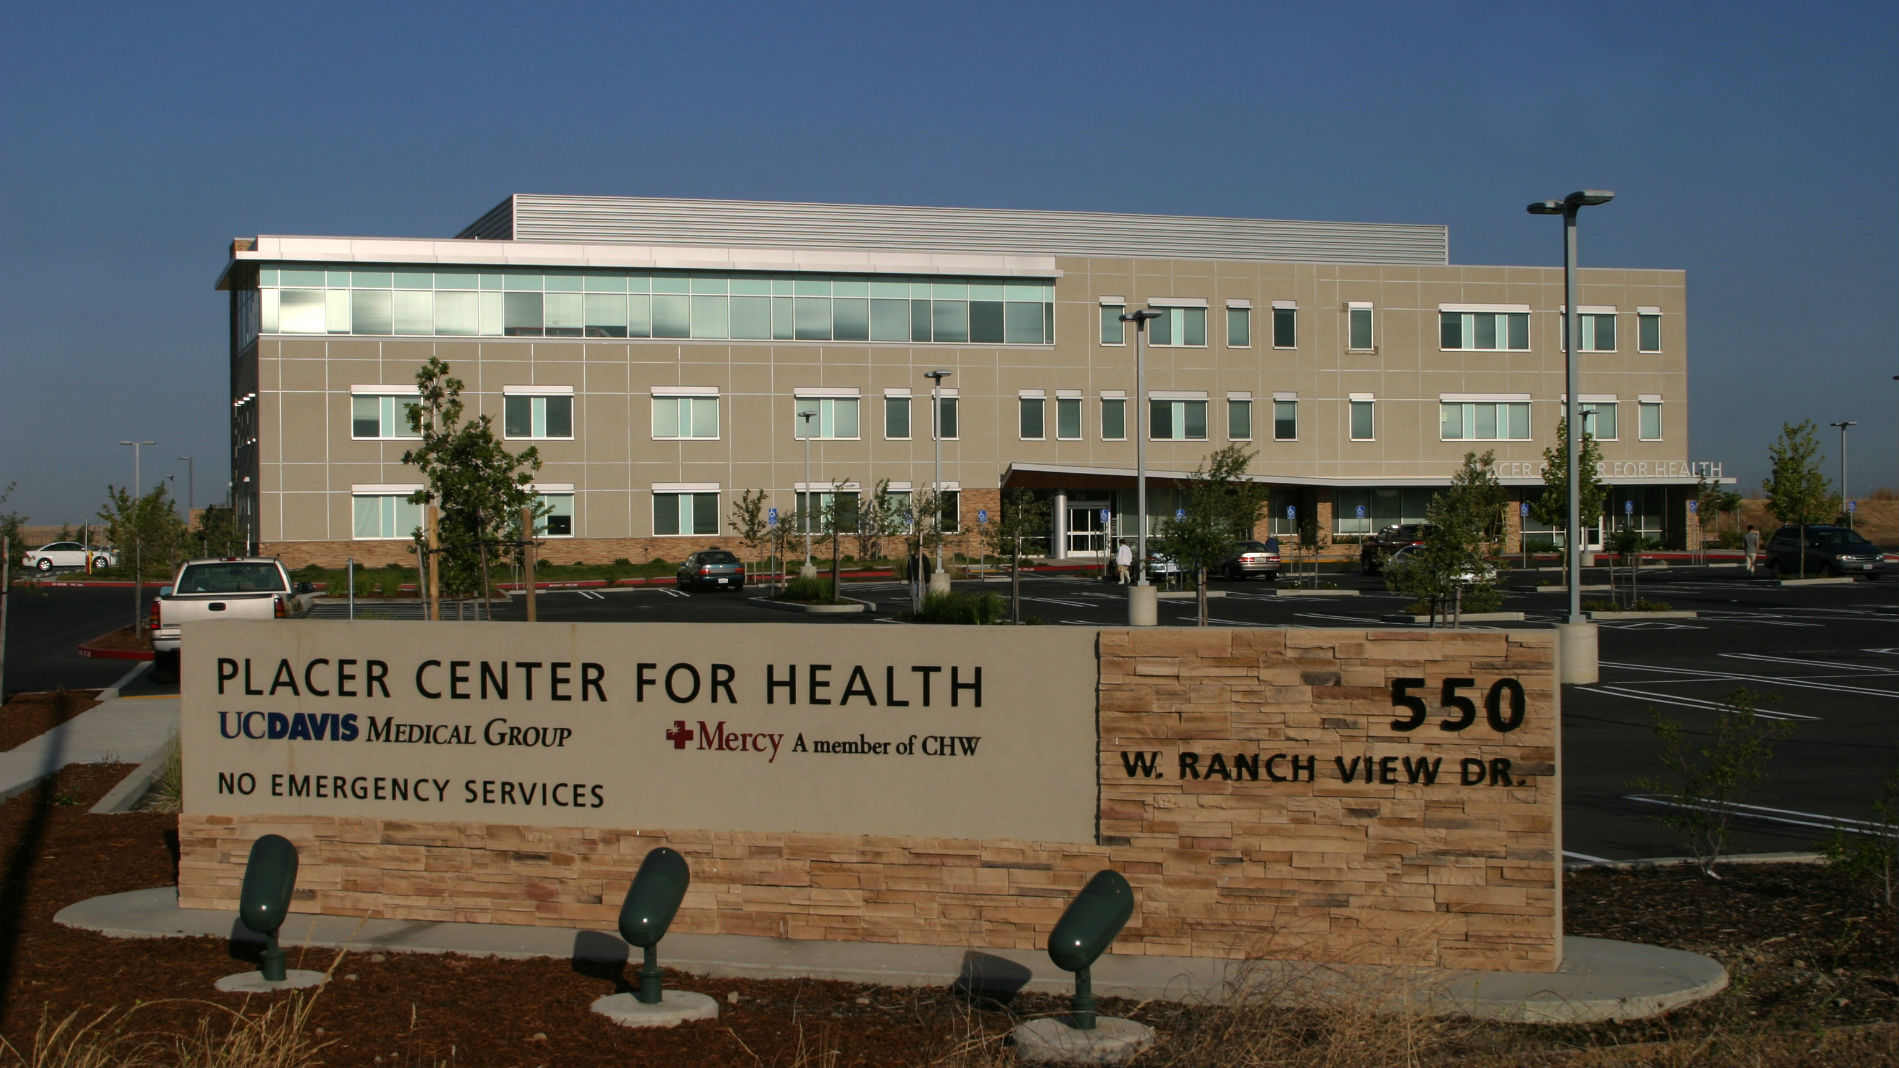 Mercy Medical Group - Rocklin, Primary and Specialty Care image 0